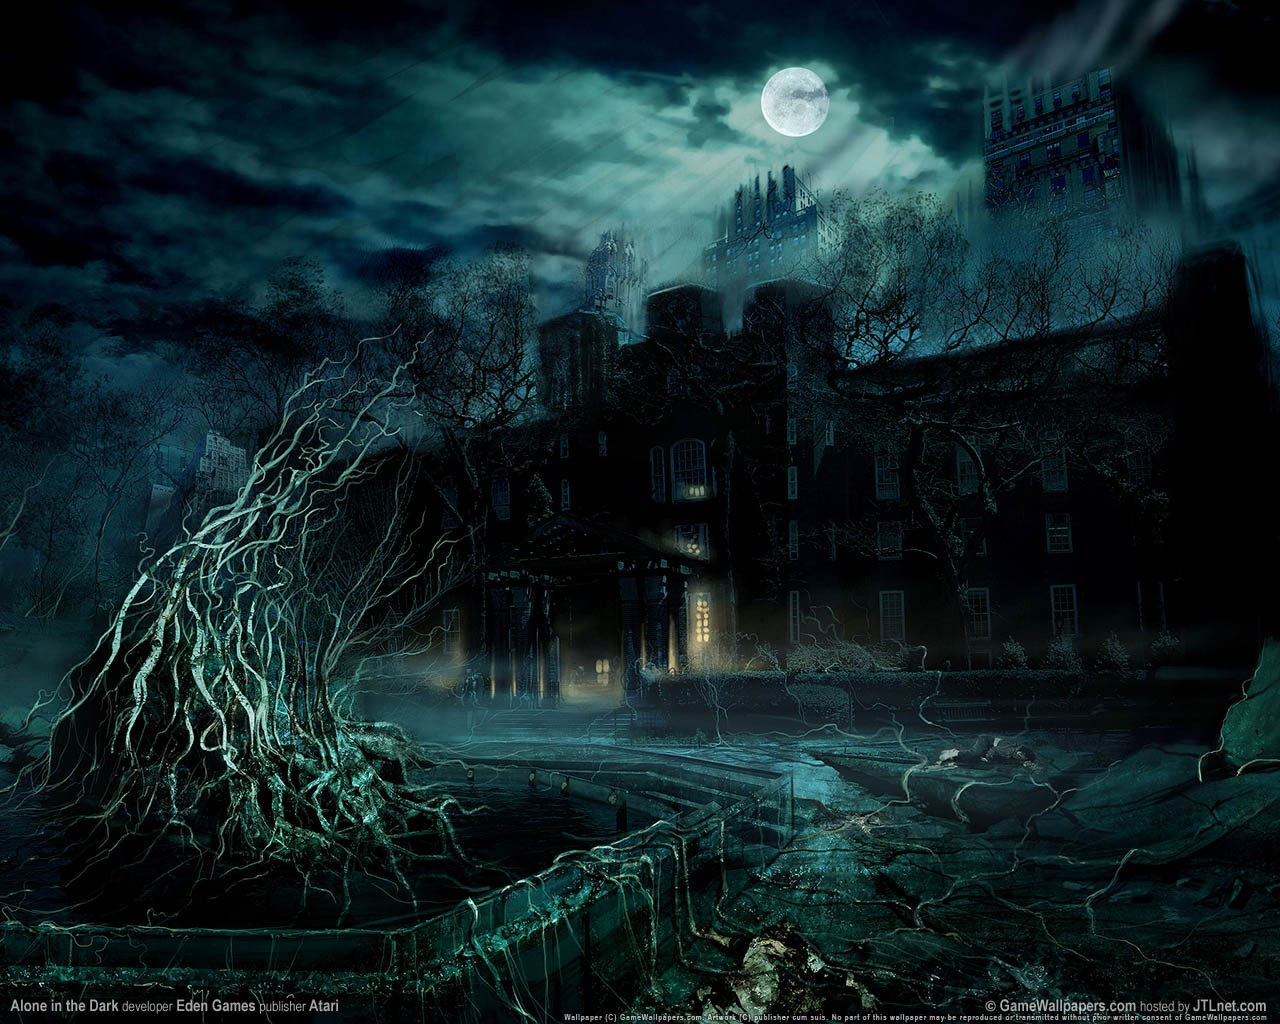 effadebb-haunted-mansion-haunted-houses-wallpaper-wp3601551-1